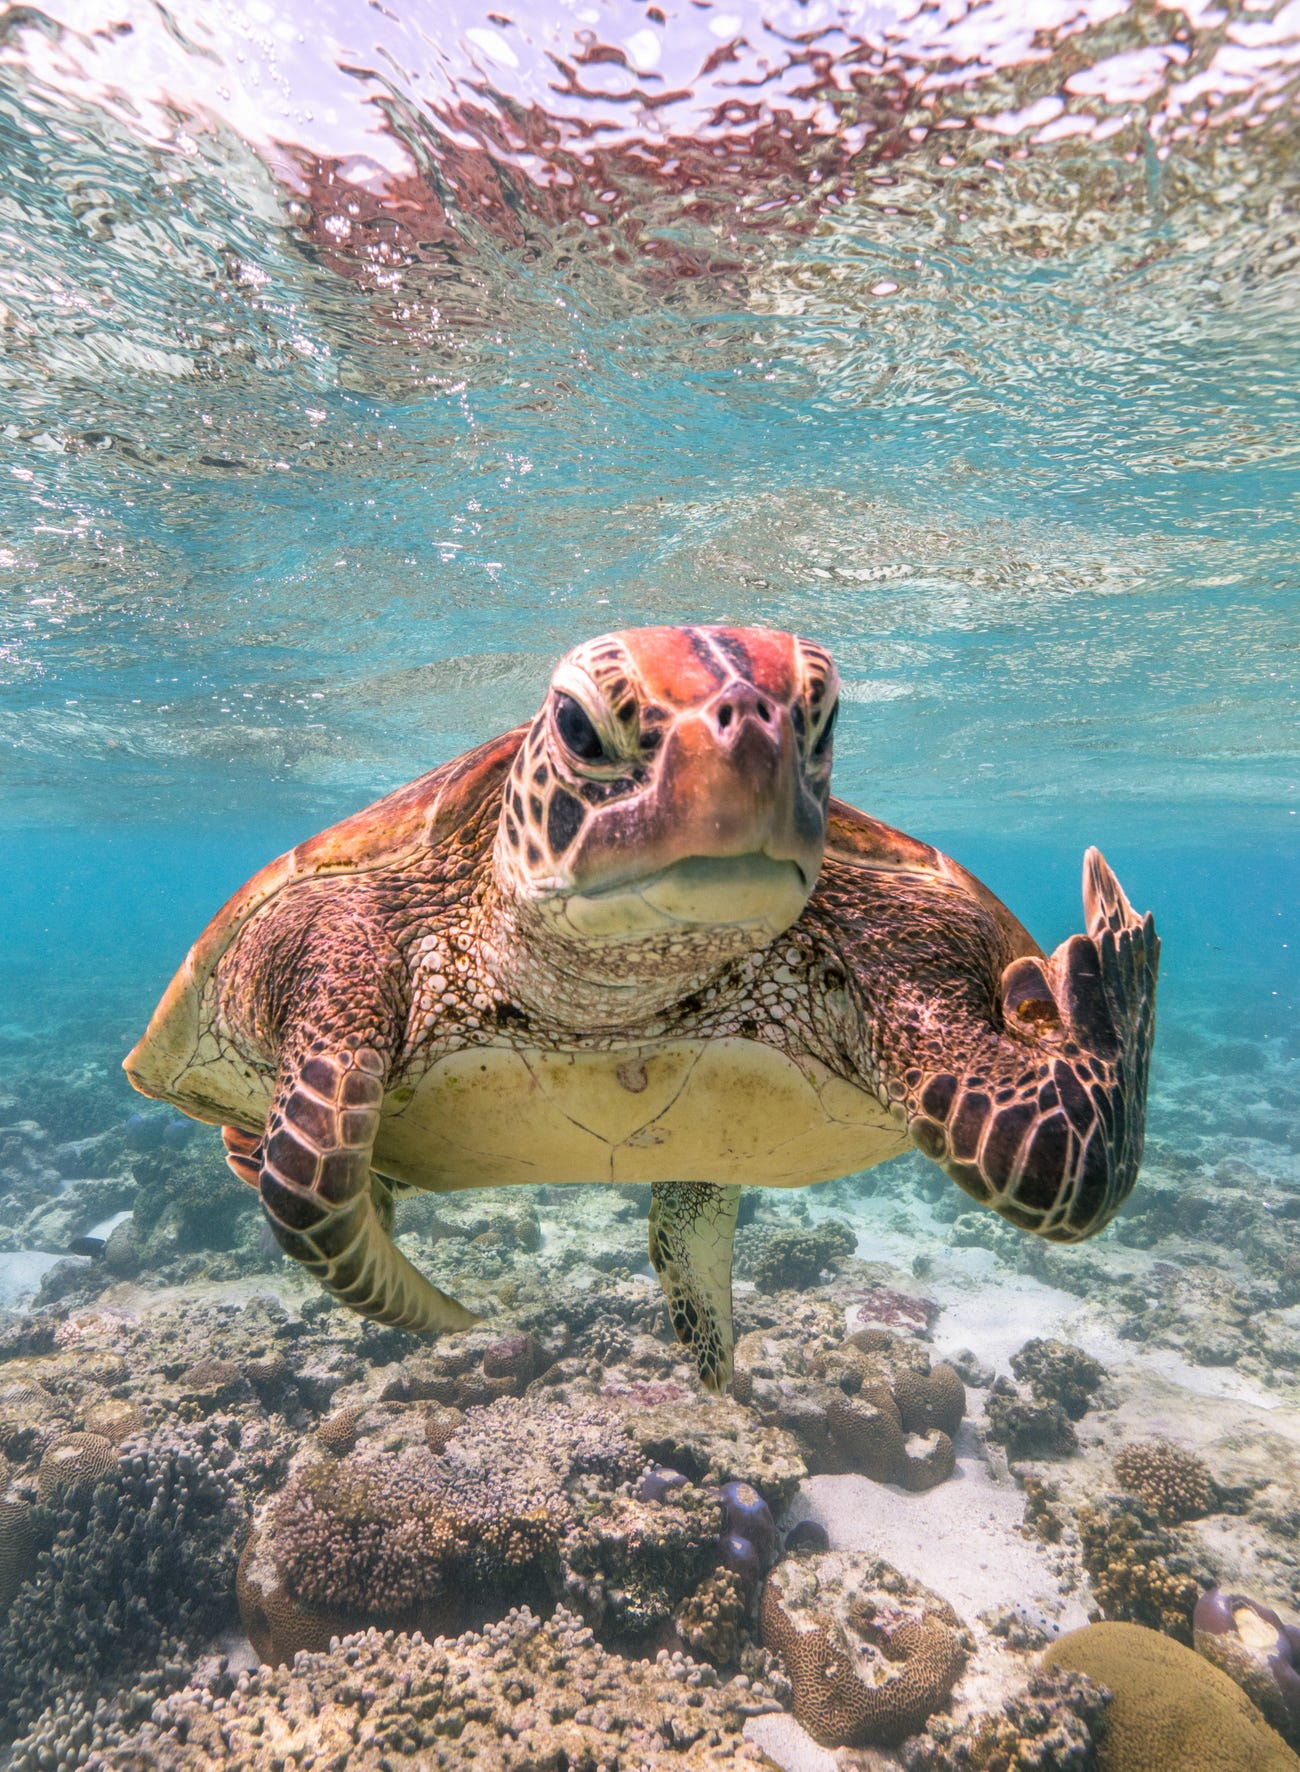 Terry the Turtle  Mark Fitzpatrick/Comedy Wildlife Photo Awards 2020Fitzpatrick spotted the turtle in Lady Elliot Island in Queensland, Australia